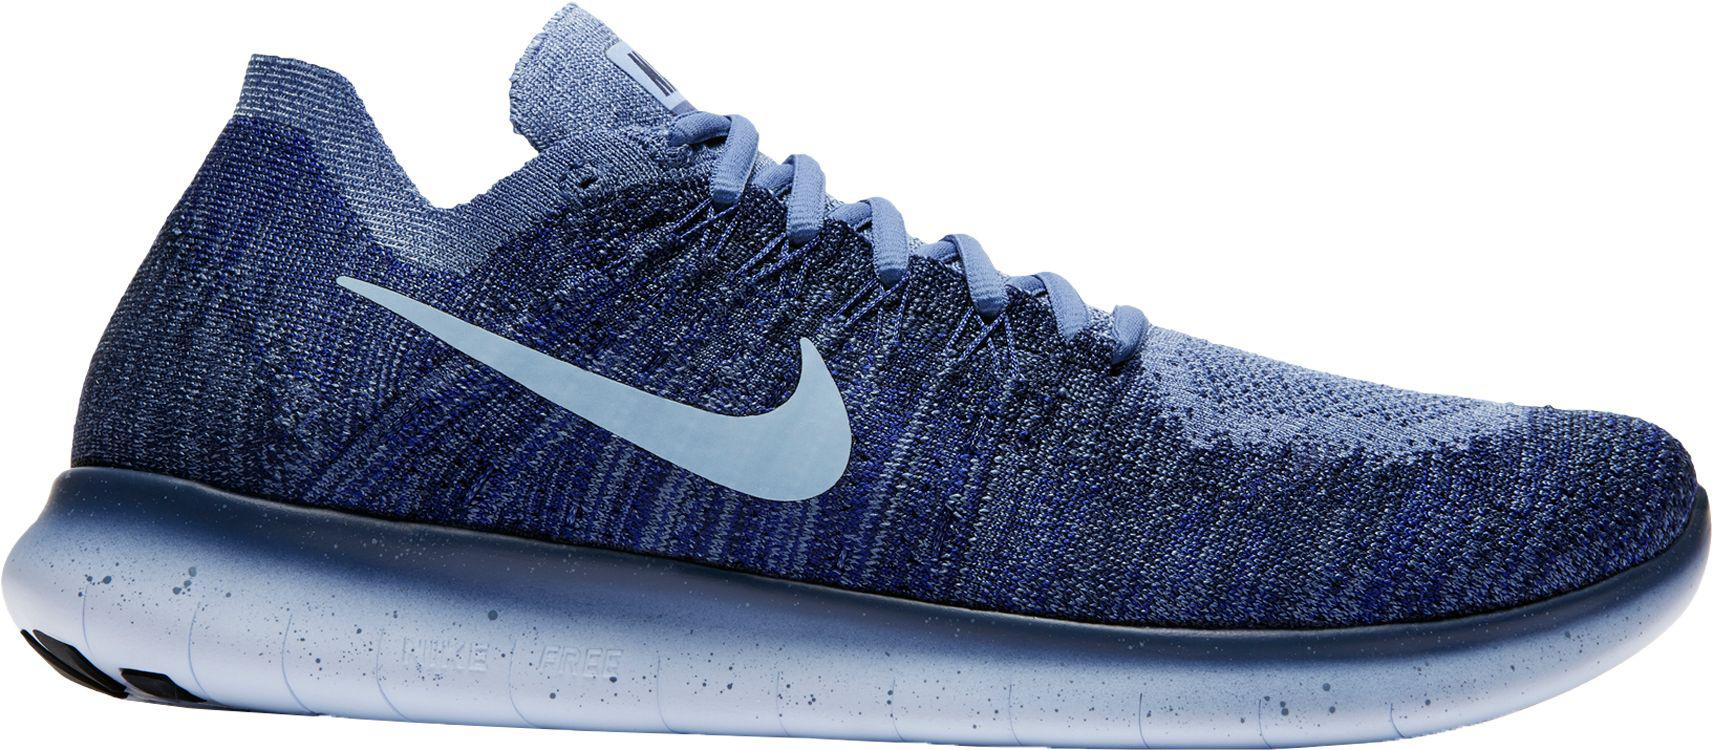 reputable site 52614 099db Nike - Blue Free Rn Flyknit 2017 Running Shoes for Men - Lyst